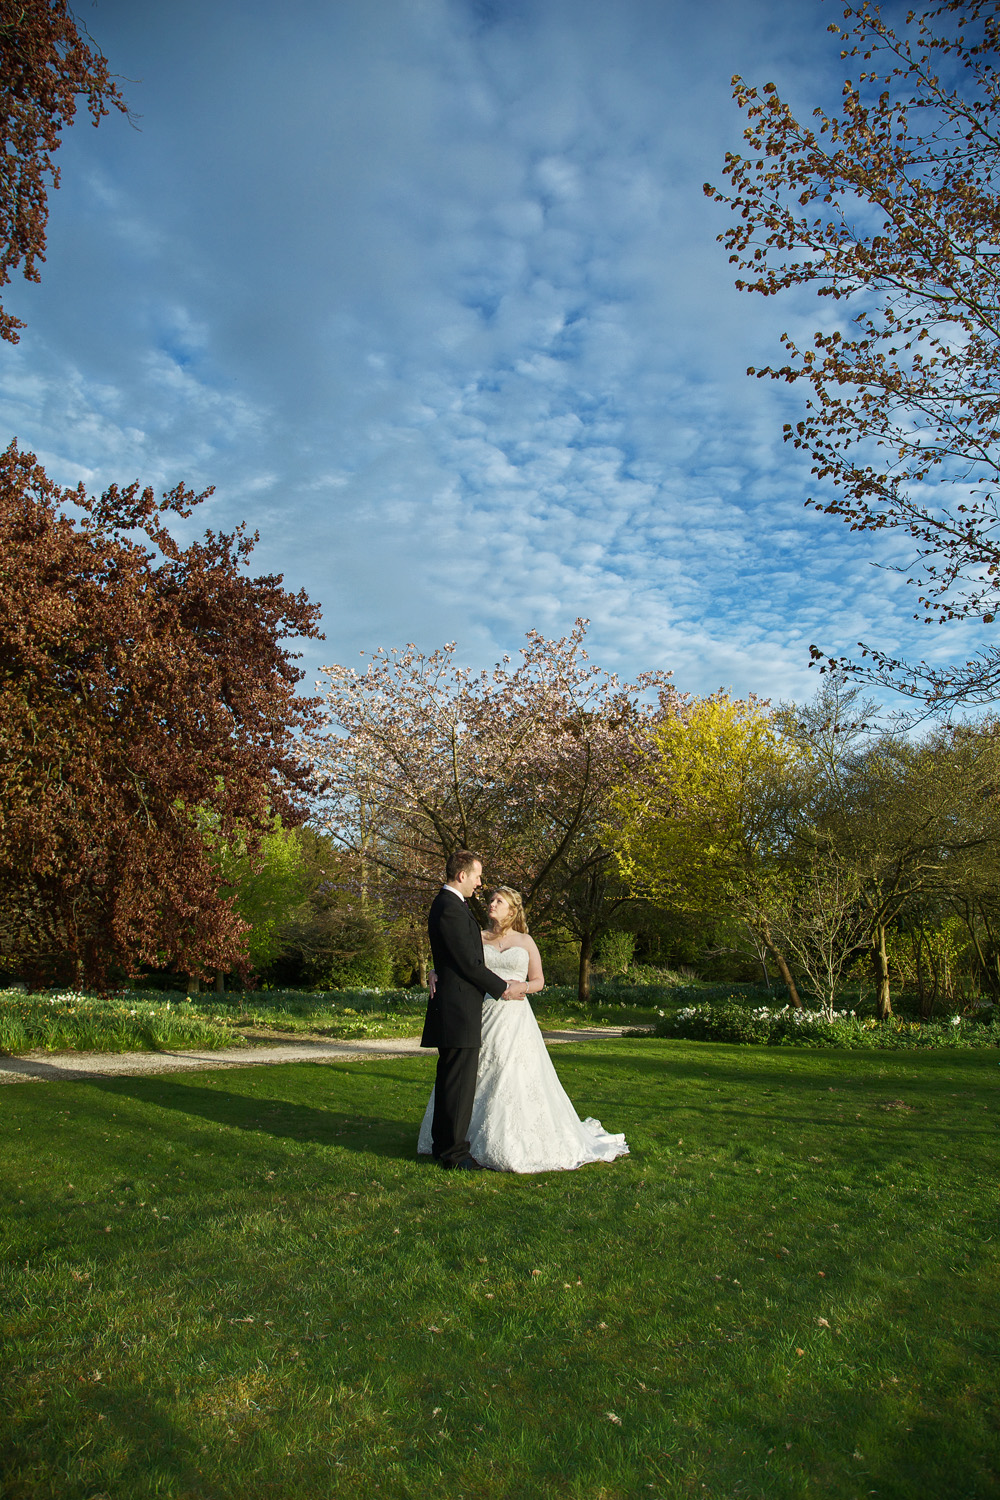 Milton_Hill_House_Wedding_Photographer_Steventon_020.jpg